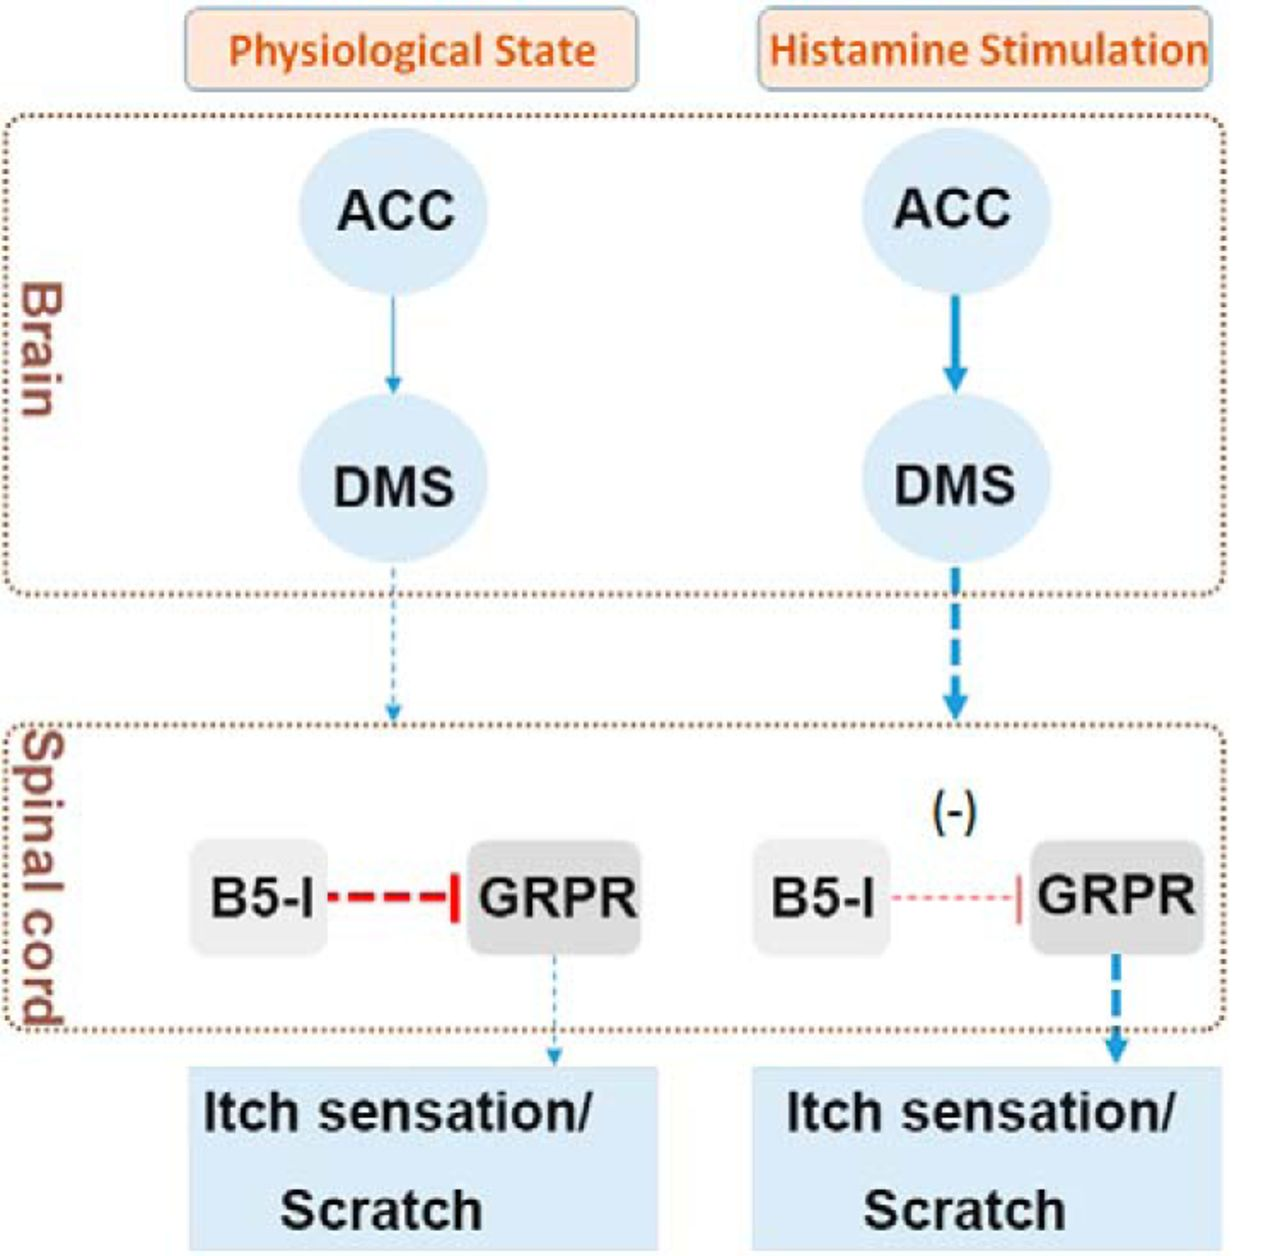 ACC to Dorsal Medial Striatum Inputs Modulate Histaminergic Itch